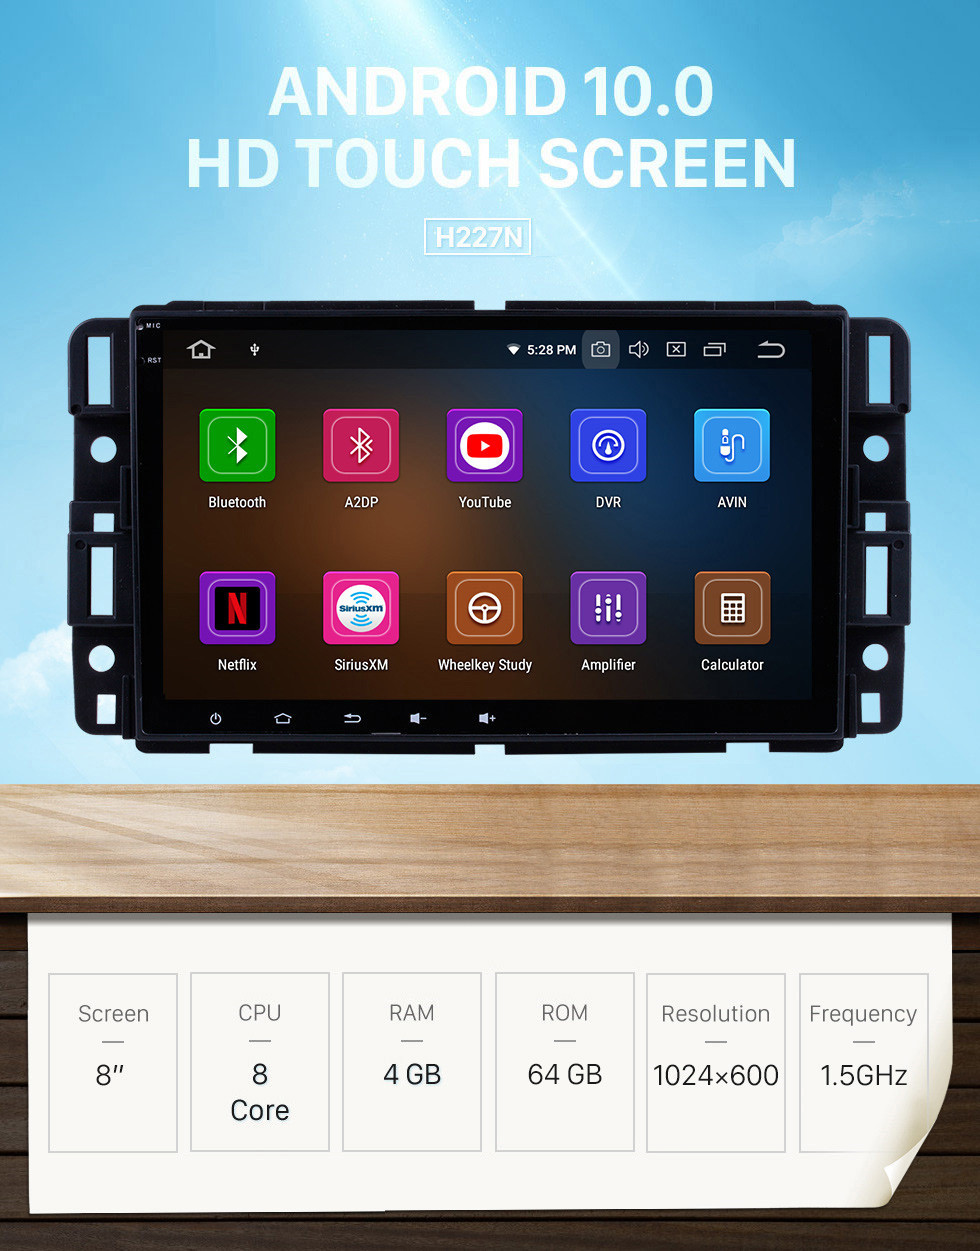 Seicane OEM 8 Inch Android 10.0 HD Touchscreen Car Radio Head Unit For 2007 2008 2009 2010 2011 Chevrolet Chevy Suburban GPS Navigation Bluetooth WIFI Support Mirror Link USB DVR 1080P Video Steering Wheel Control